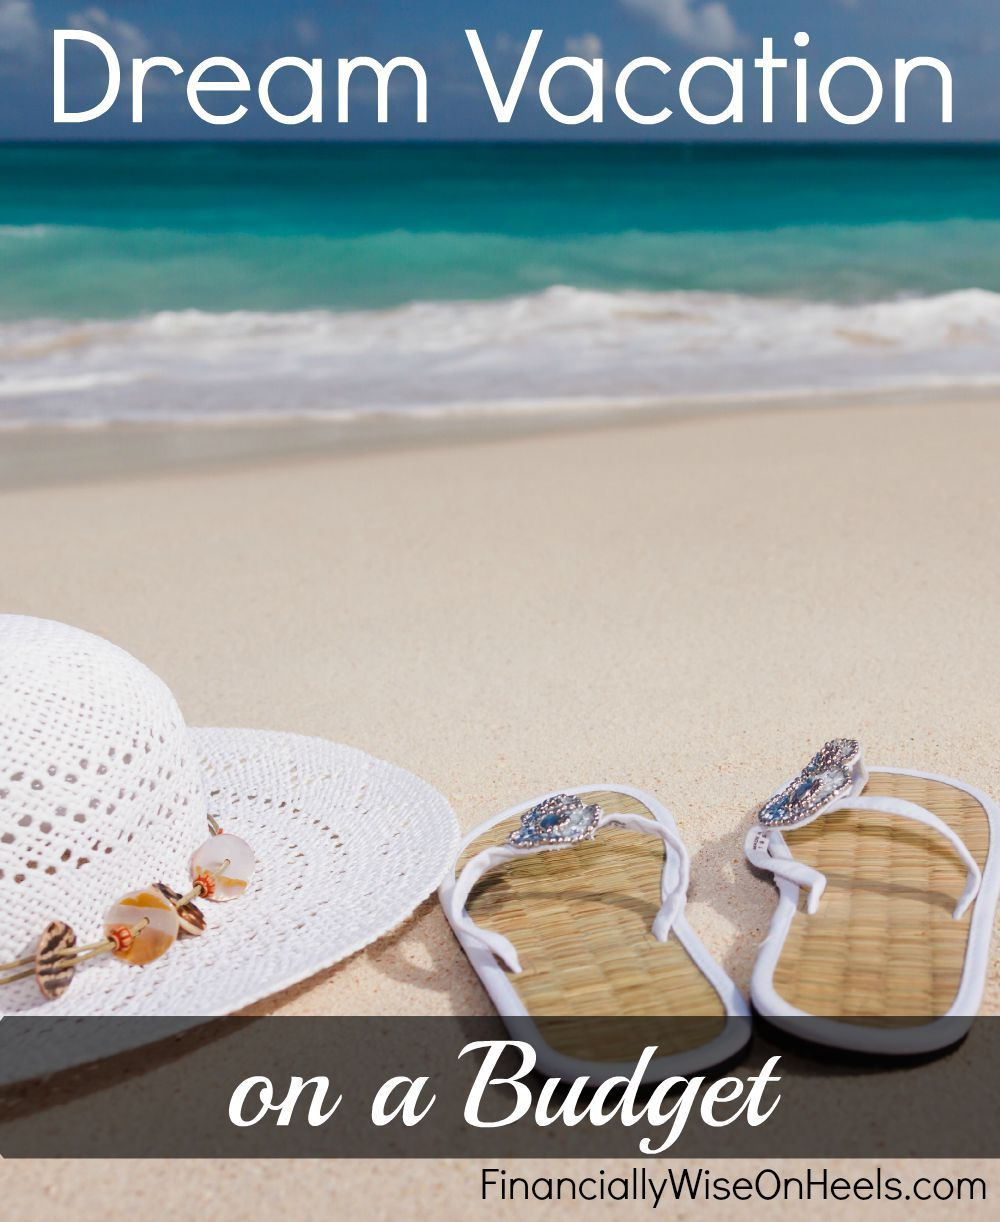 How Would You Feel If You Could Afford Your Dream Vacation